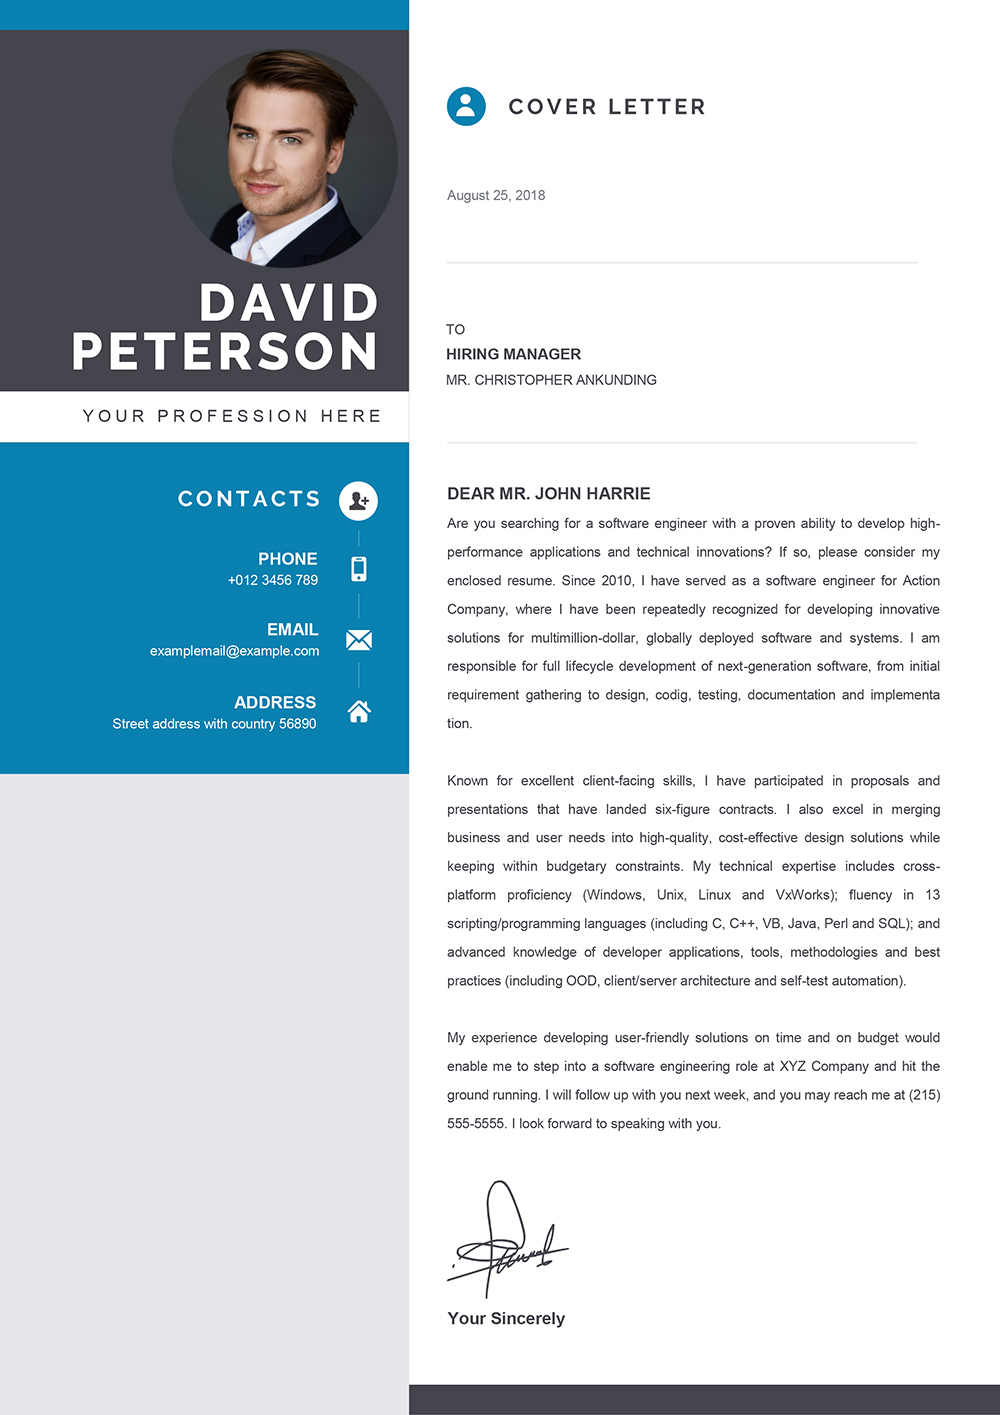 Download Cover Letter Template Word from www.mycvstore.com